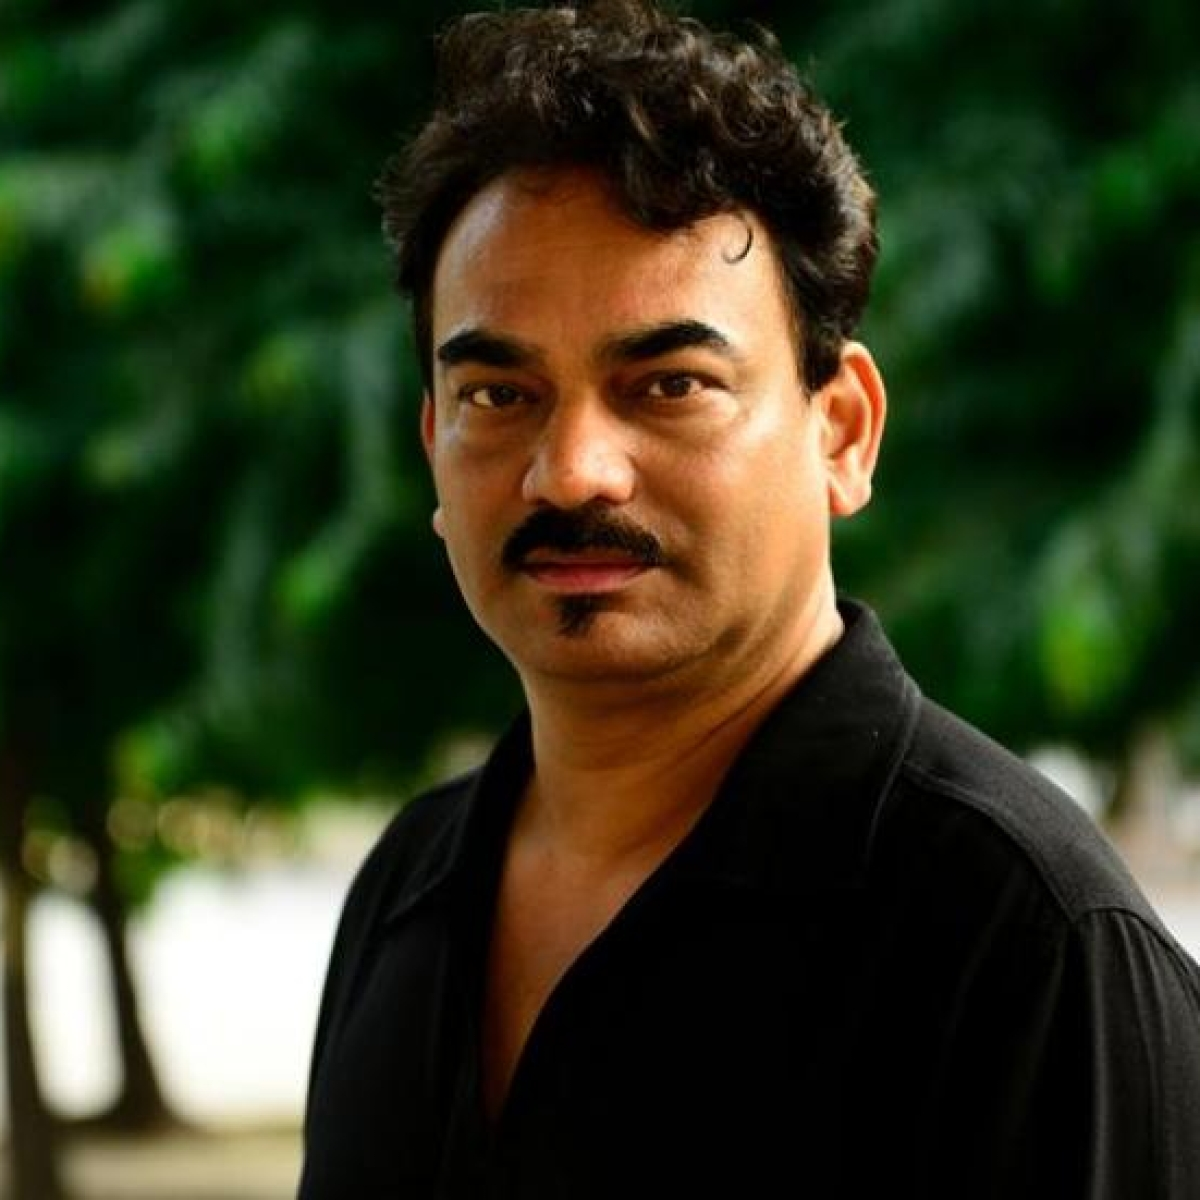 Mourning Wendell Rodricks and his 'Tia Rosa', who I never met